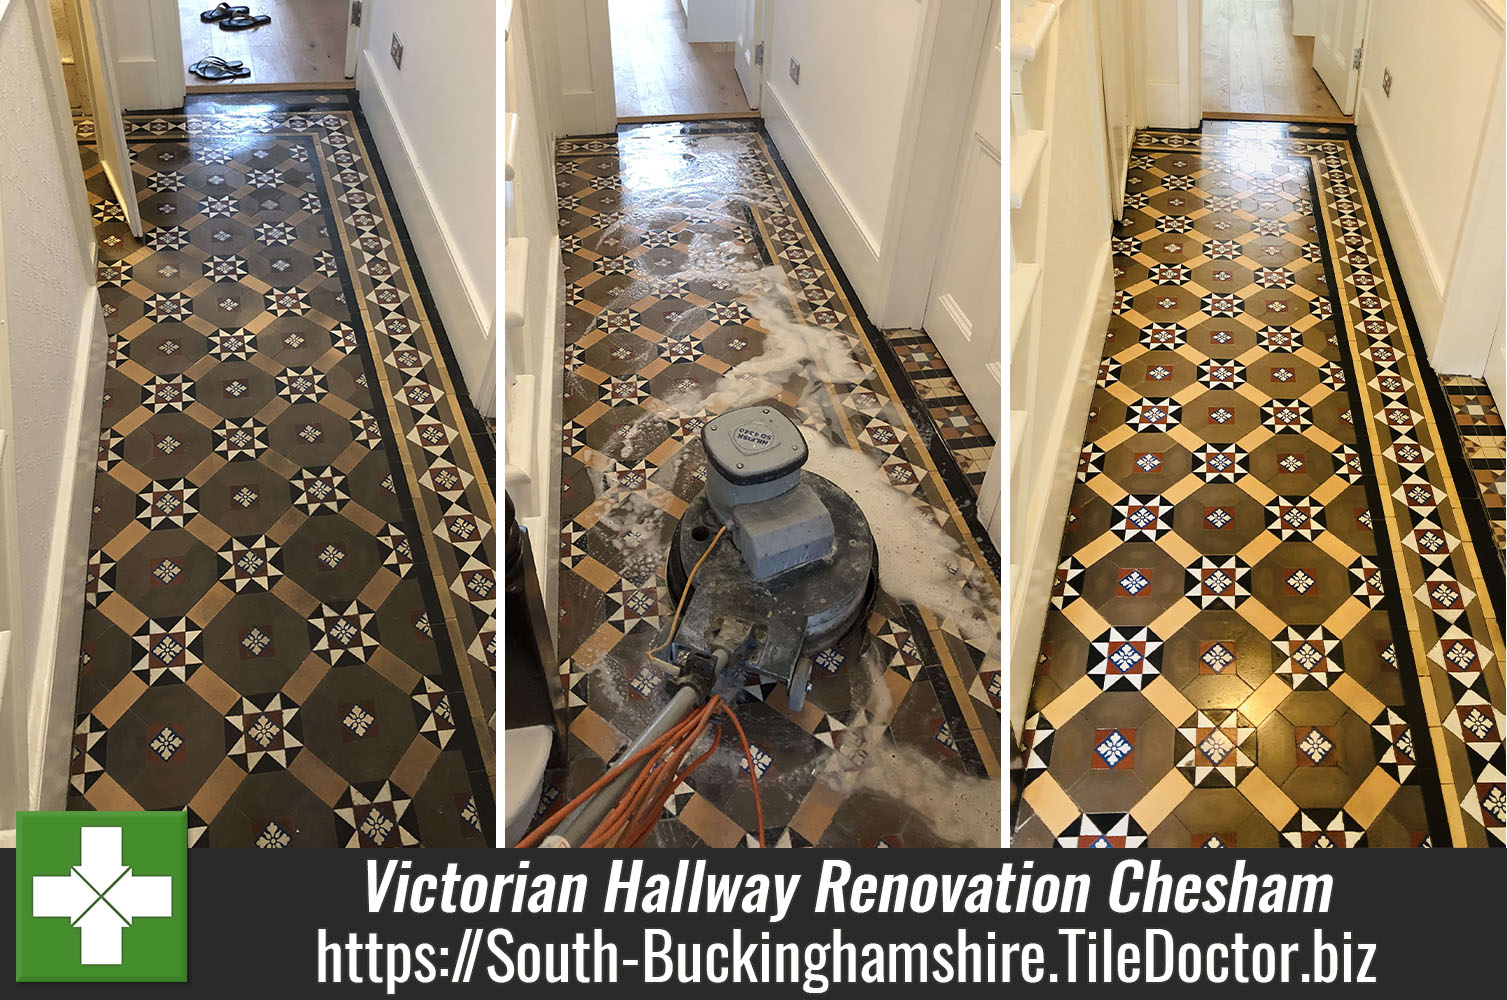 Victorian Tiled Hallway Renovation Chesham